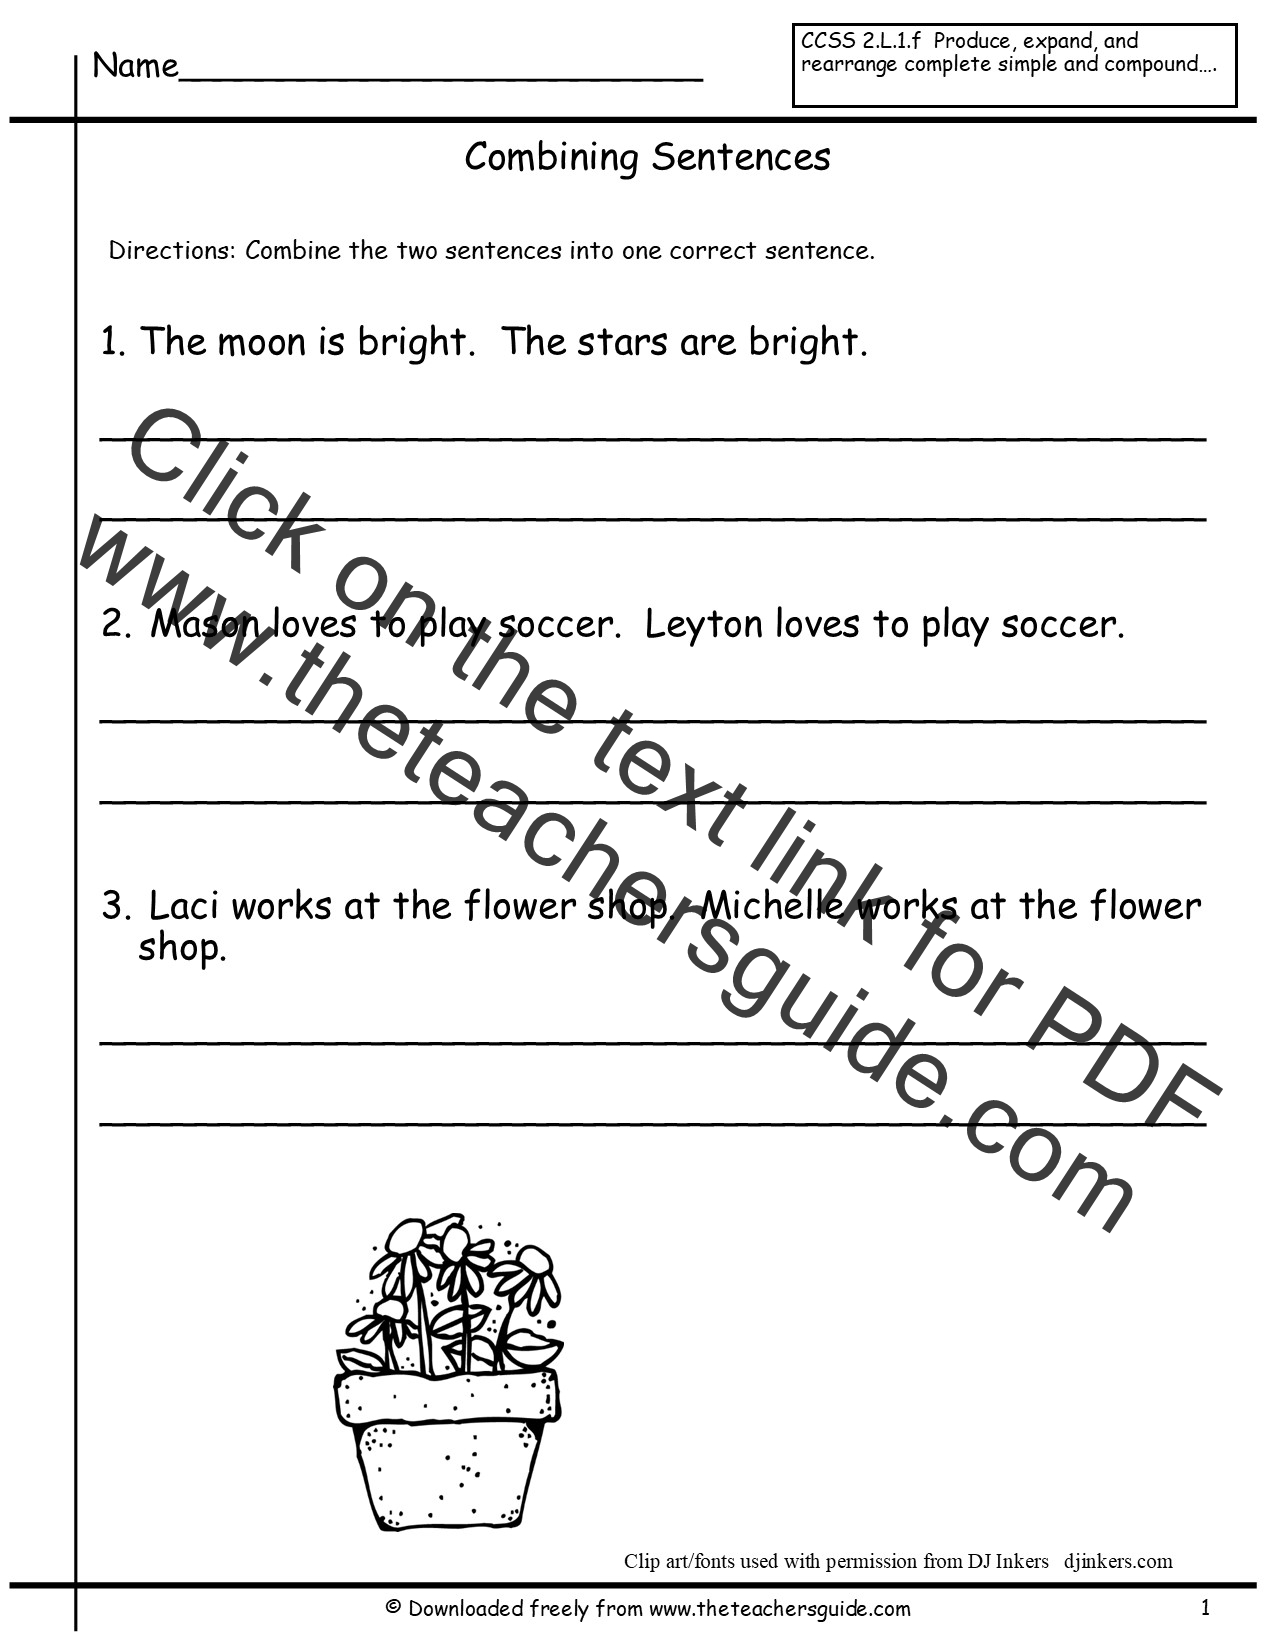 Worksheets Correct Sentences Worksheet